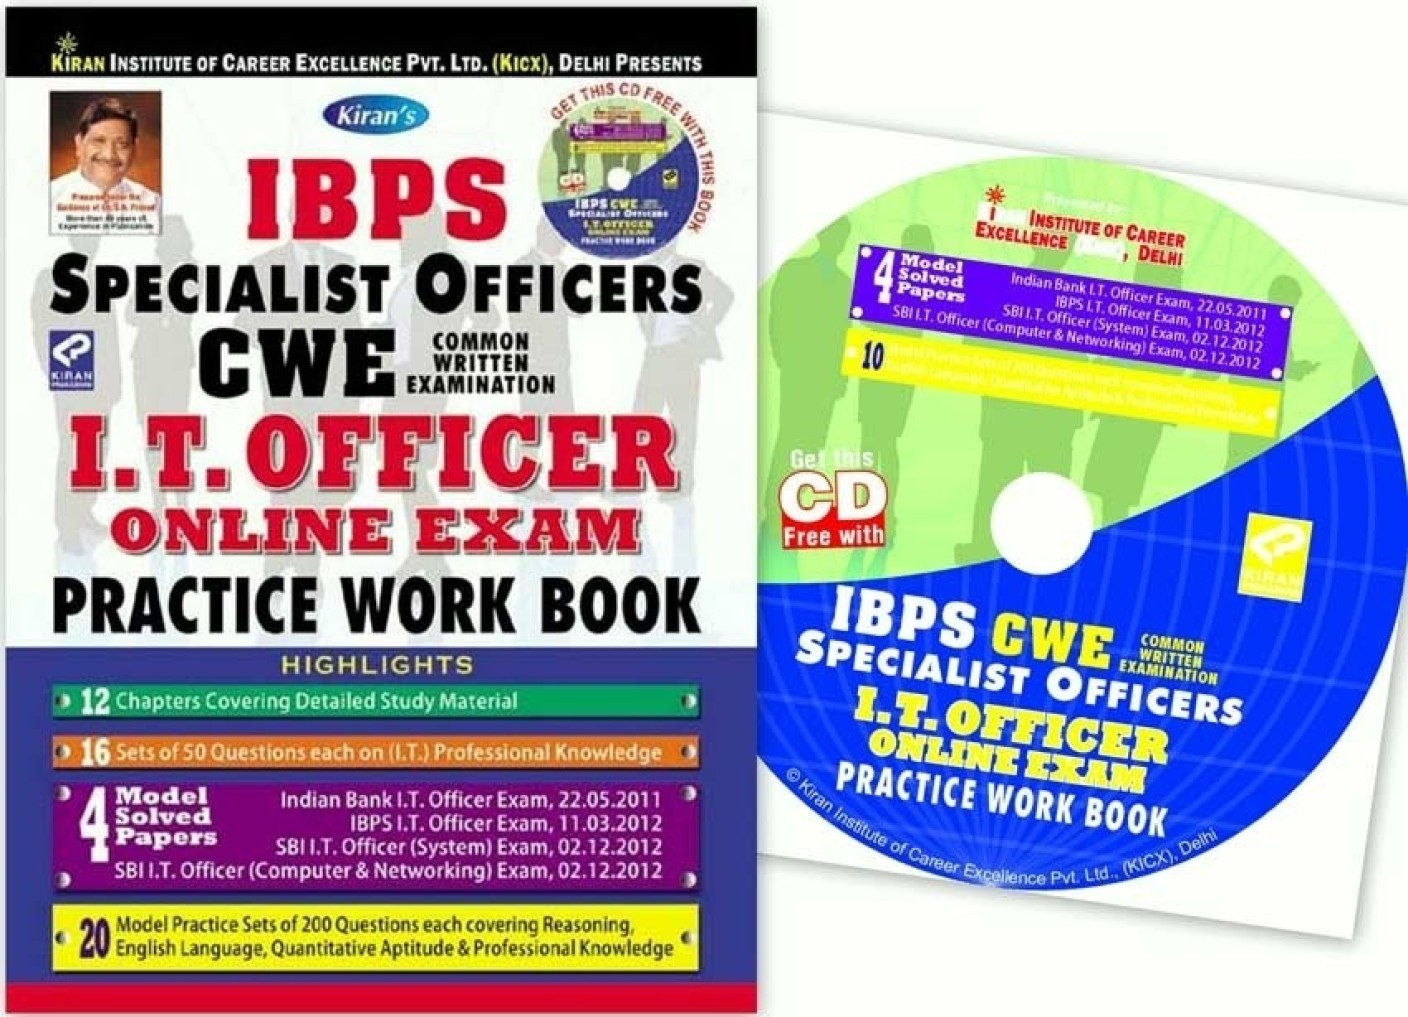 ibps specialist officers cwe i t officer online exam practice add to cart